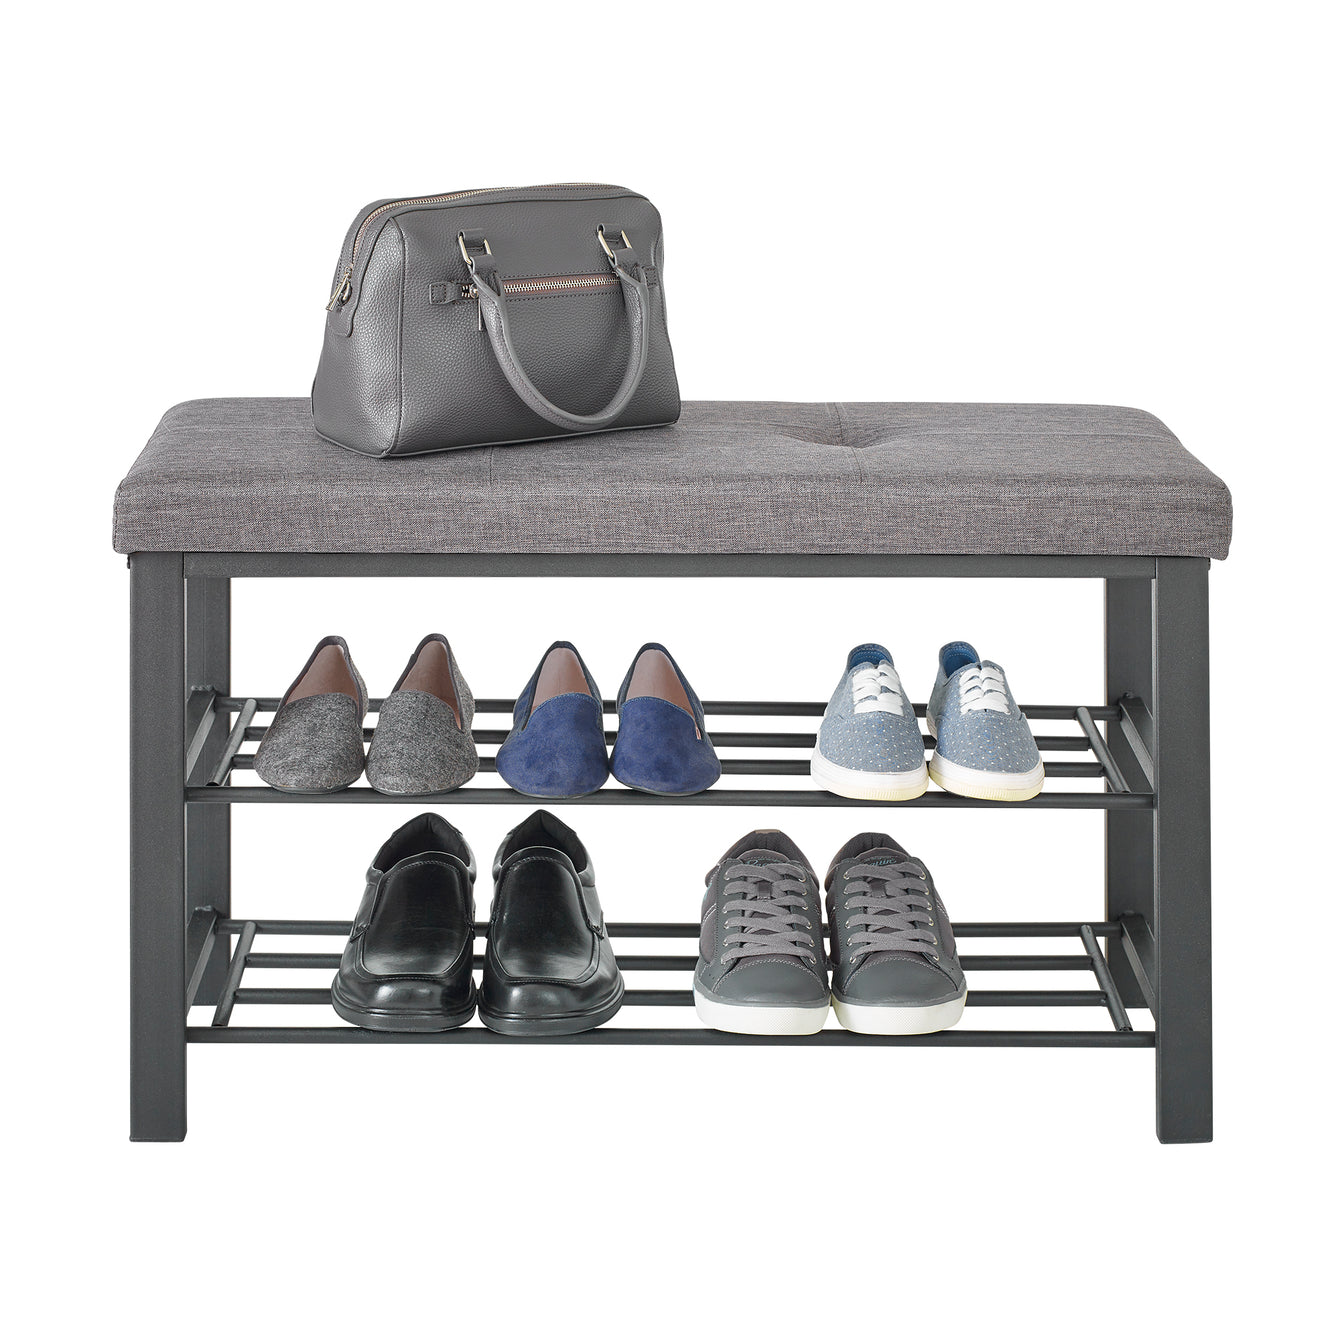 Fabric Upholstered Shoe Storage Bench – Style 5903